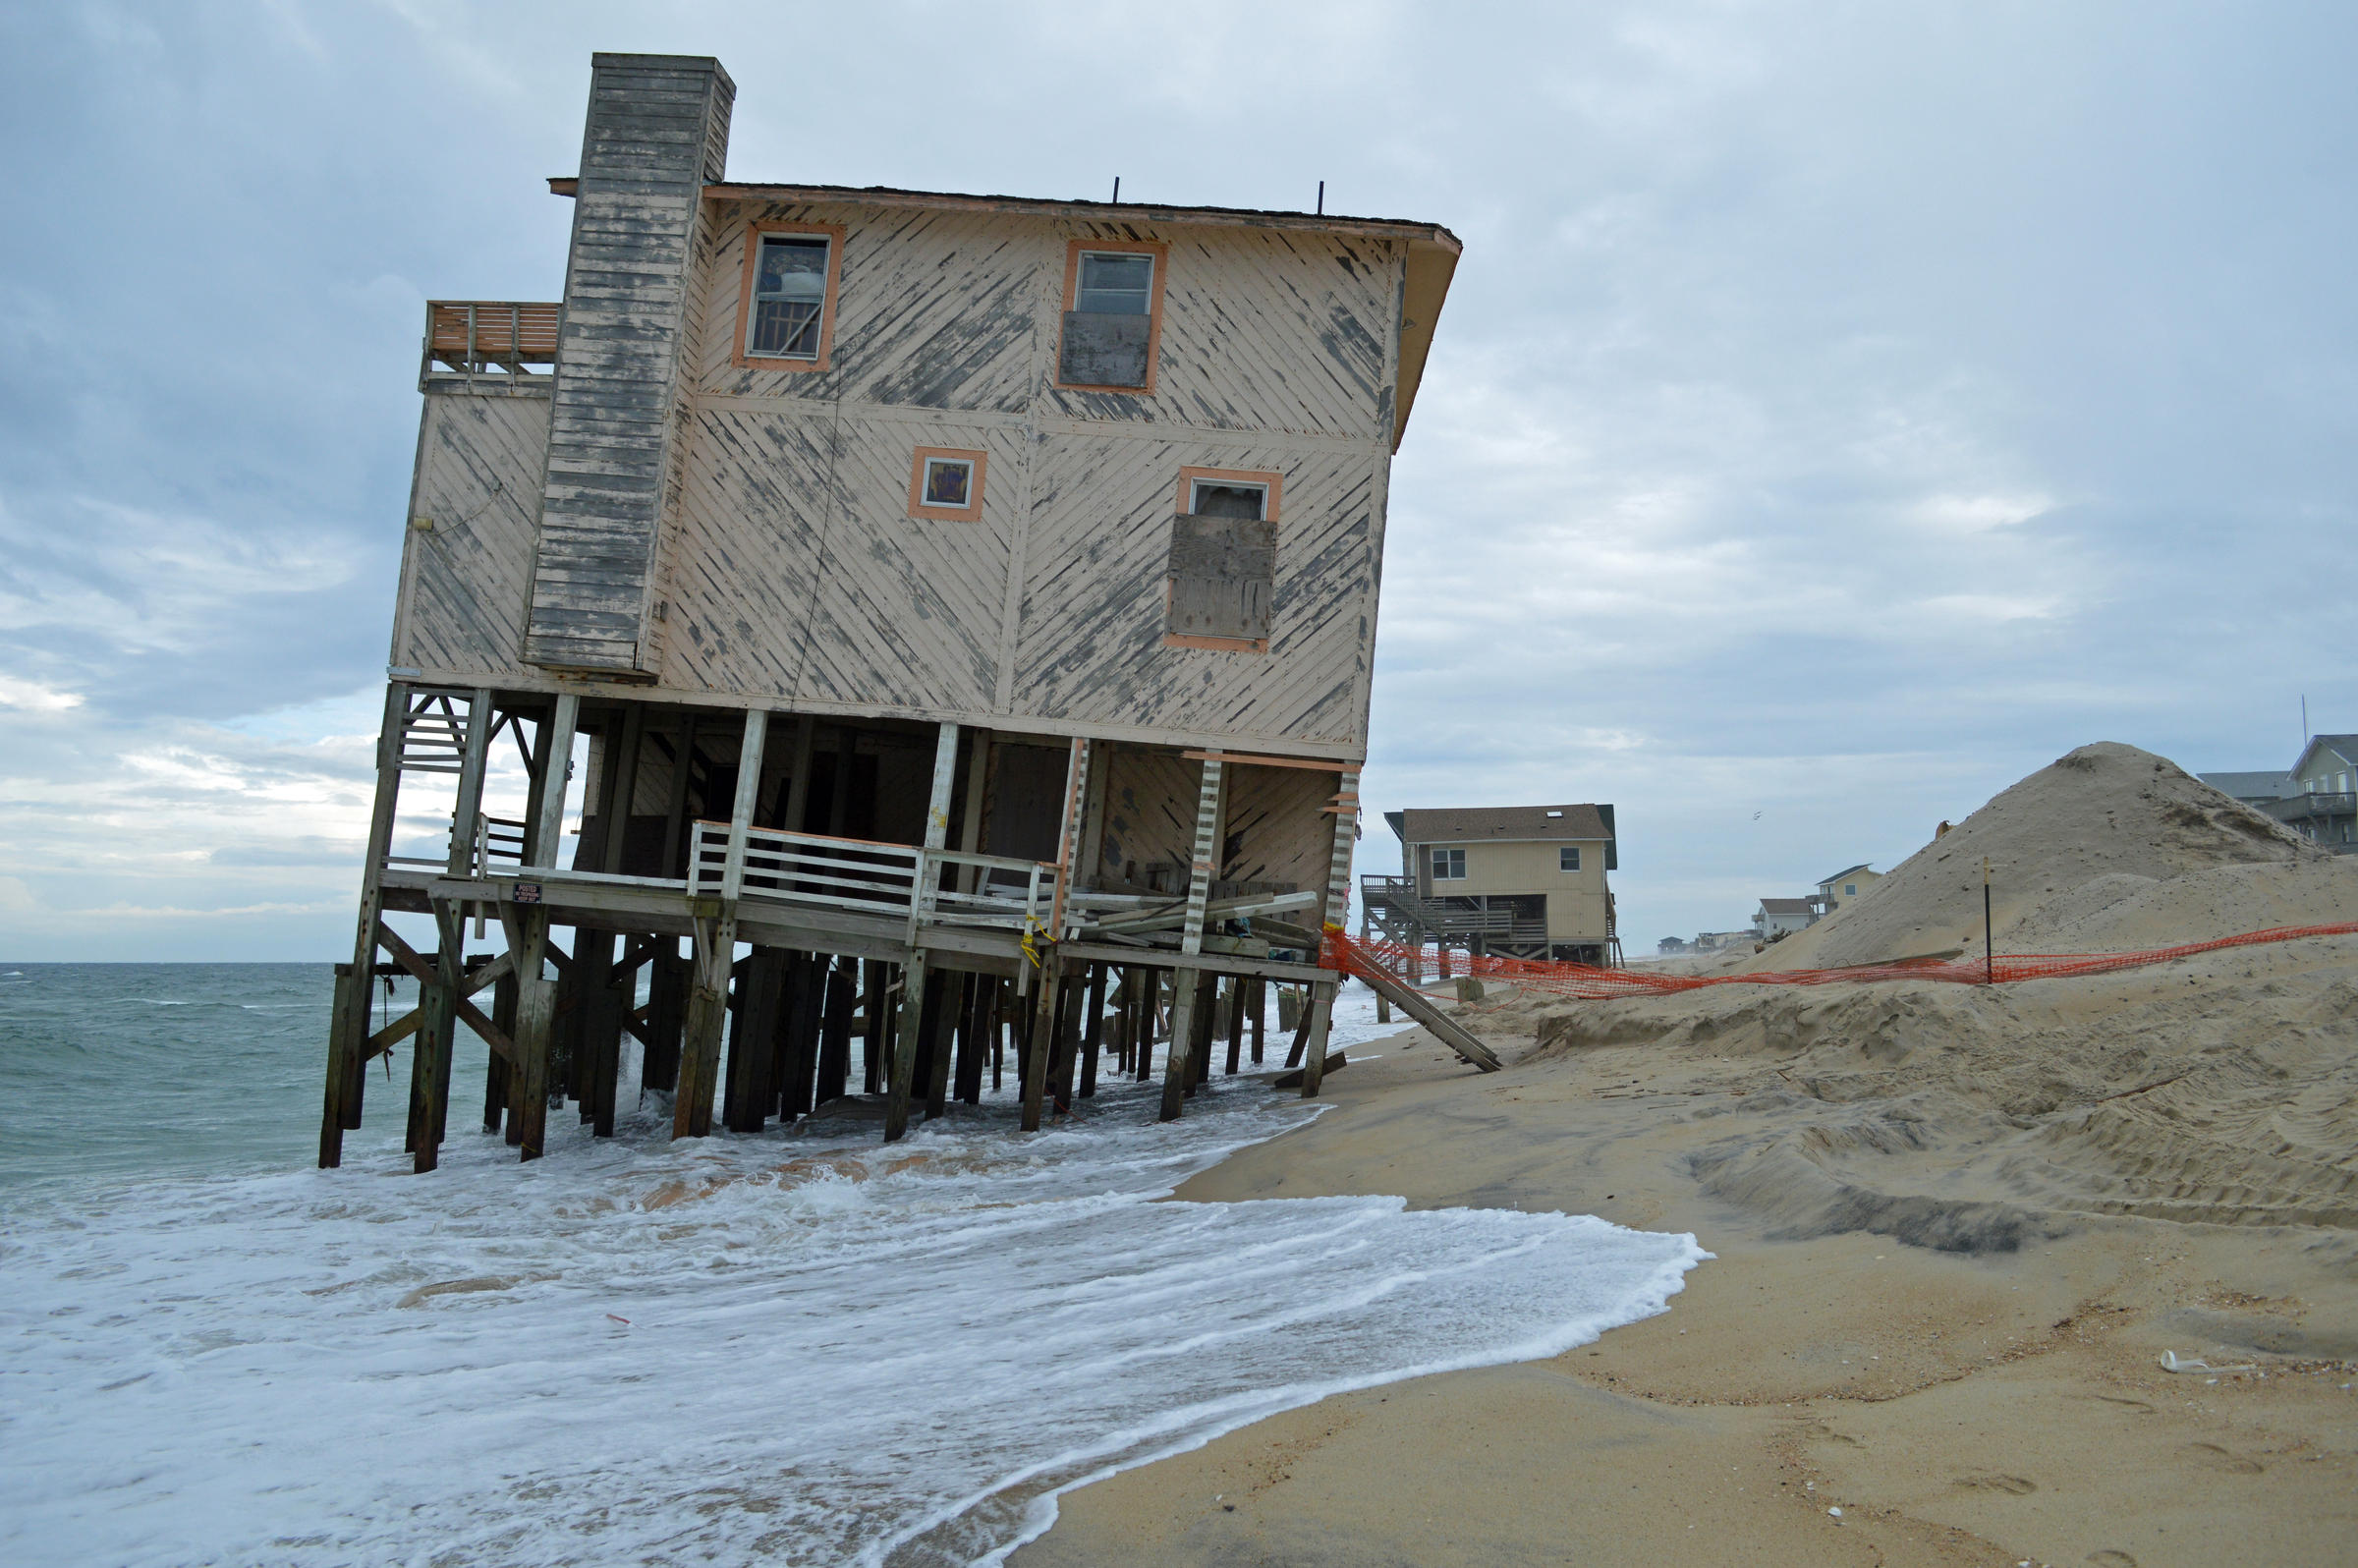 Outer banks house rental house plan 2017 for Beach house plans outer banks